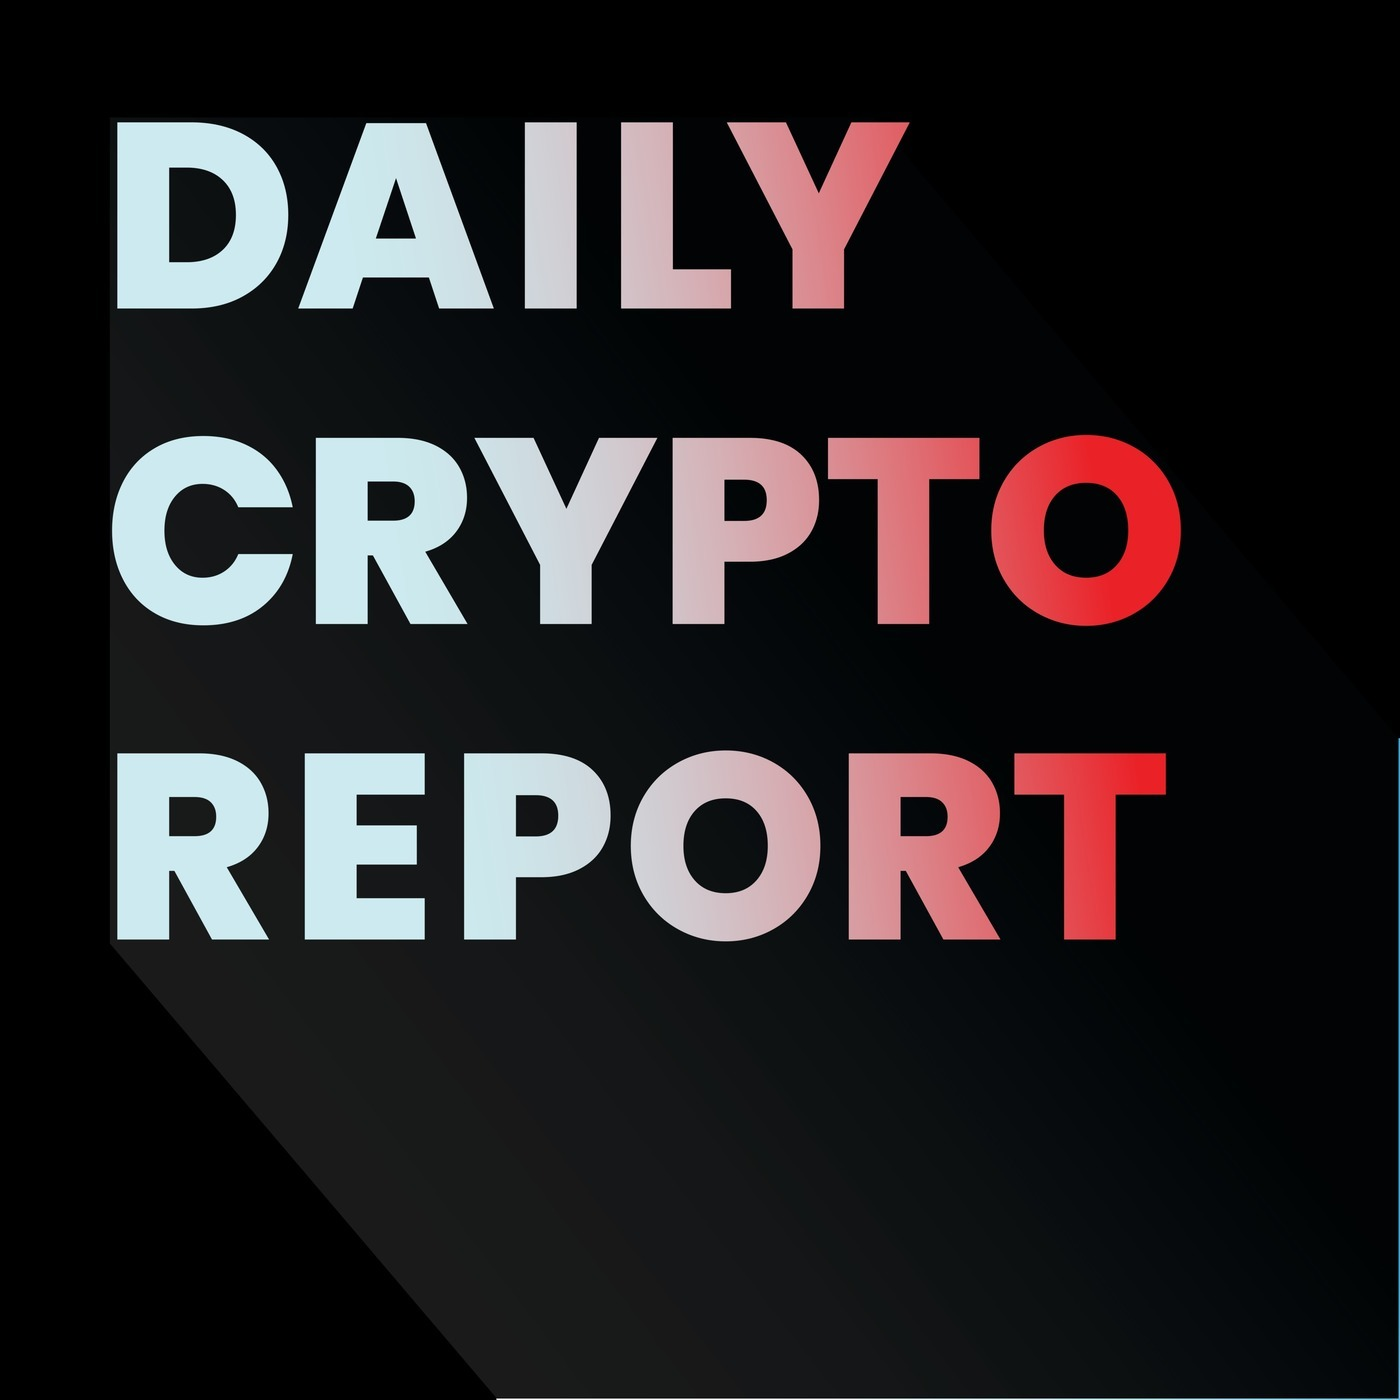 """Daily Crypto Report: """"Fluree raises flurry of funds"""" October 1, 2020"""